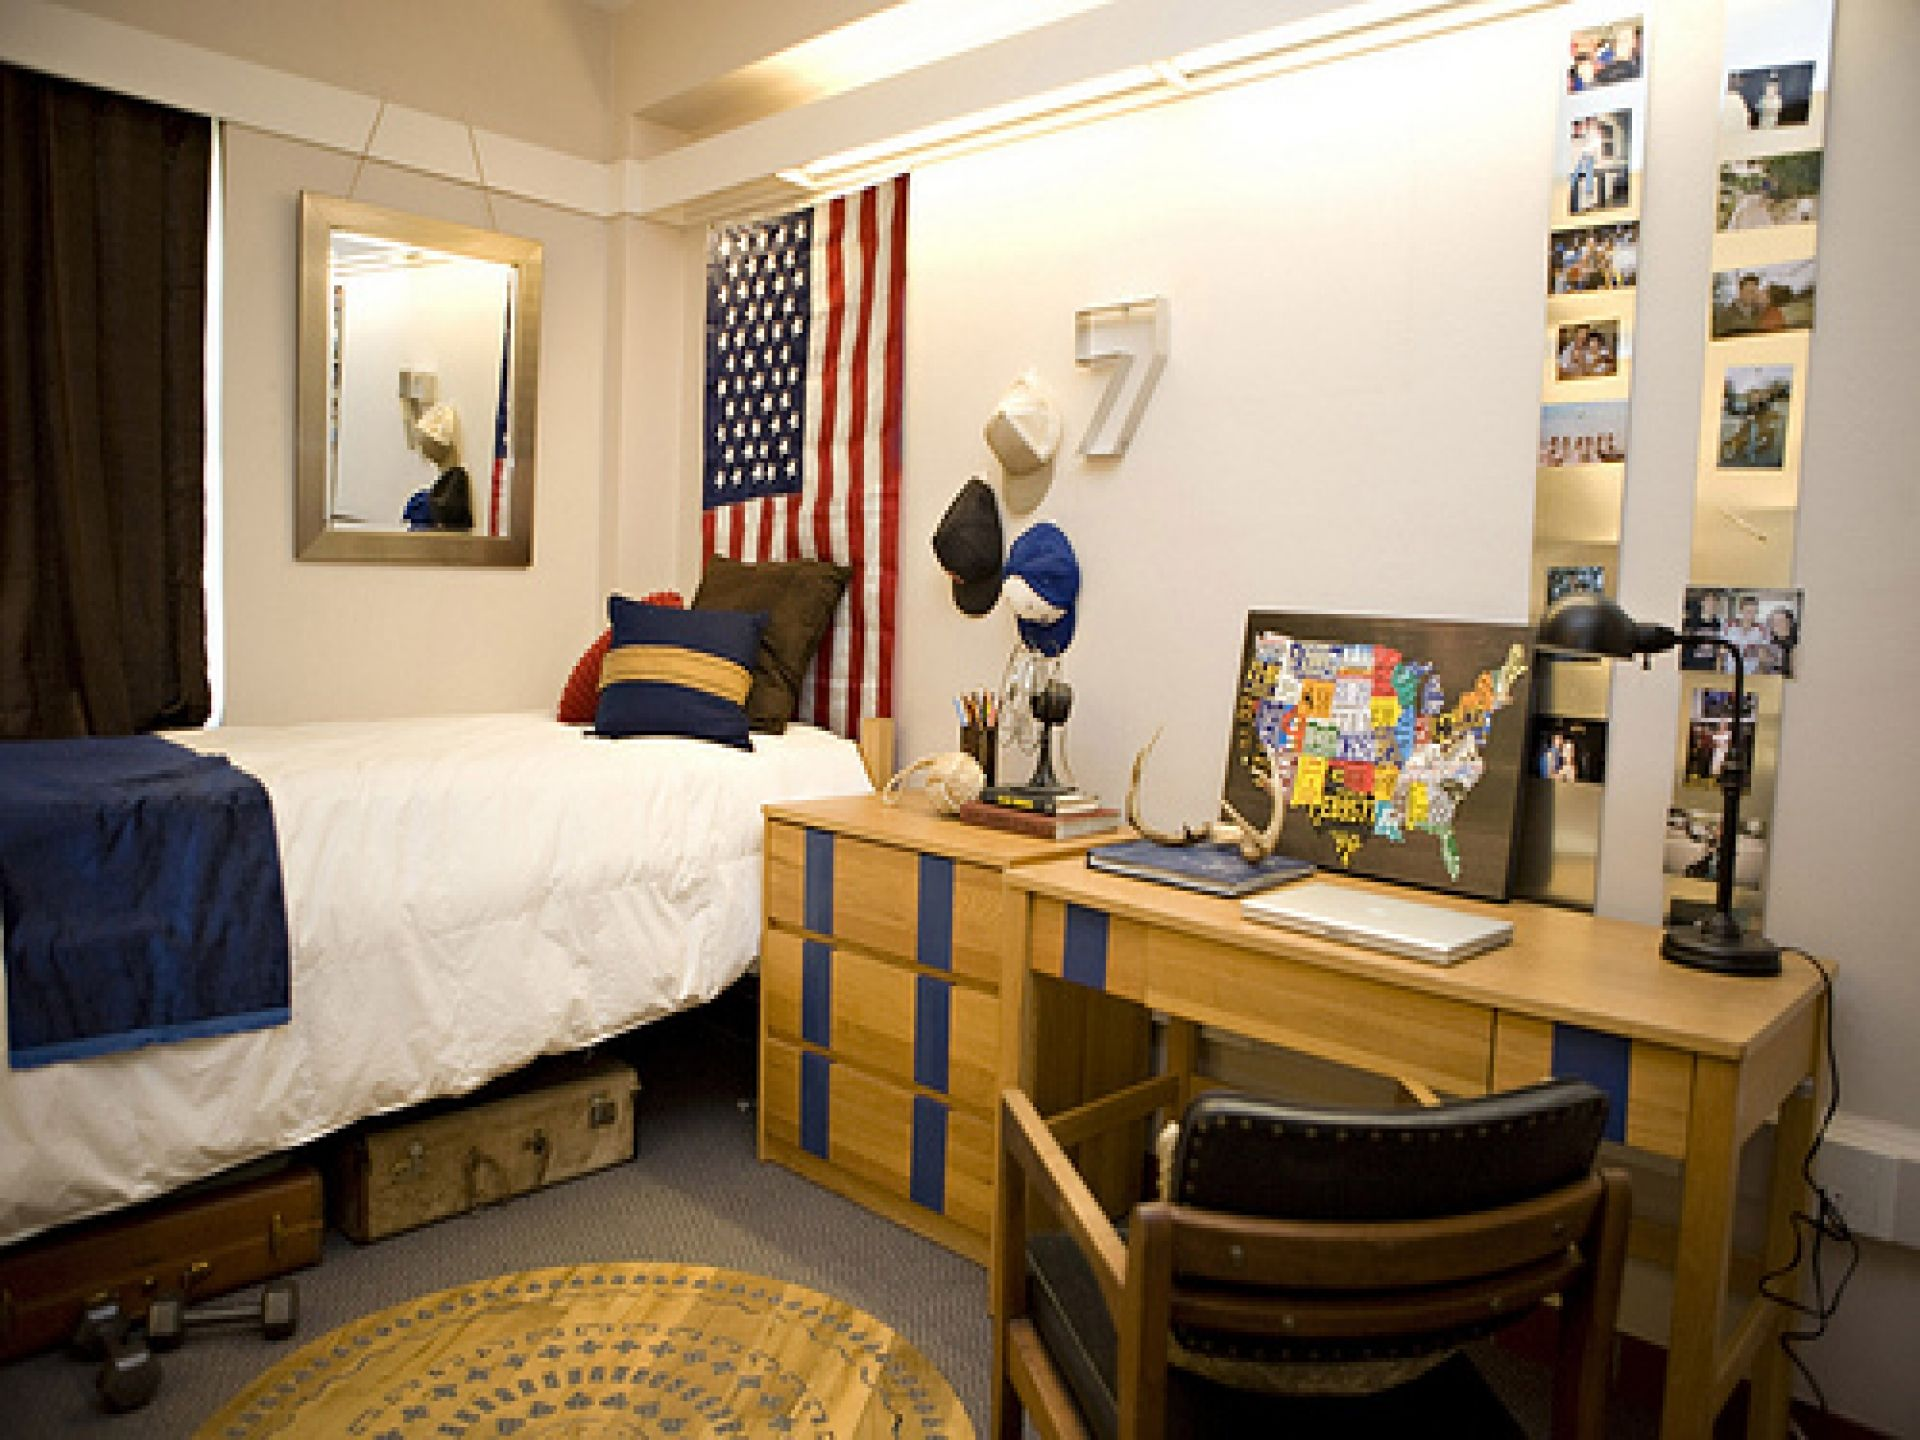 Charming College Dorm Room Ideas   Google Search